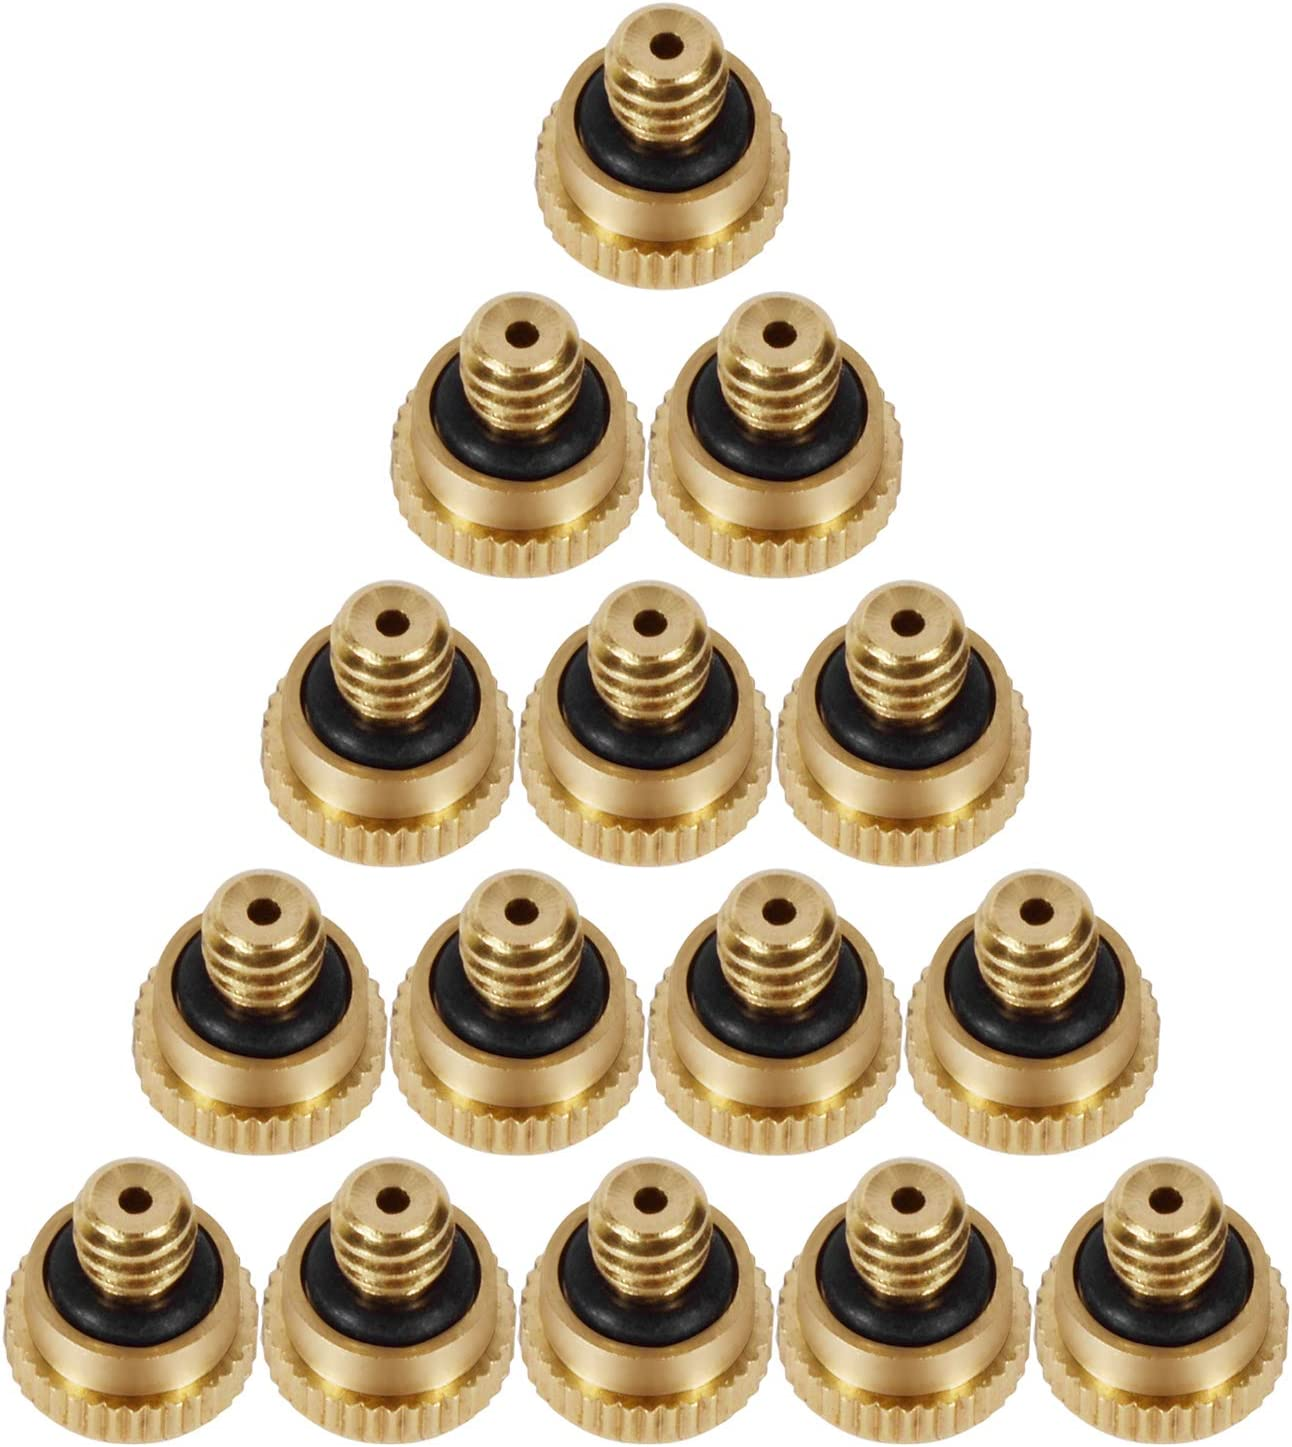 "LOOYUAN 20pcs Brass Misting Nozzles for Outdoor Cooling System 0.012"" Orifice (0.3 mm) 10/24 UNC Garden"